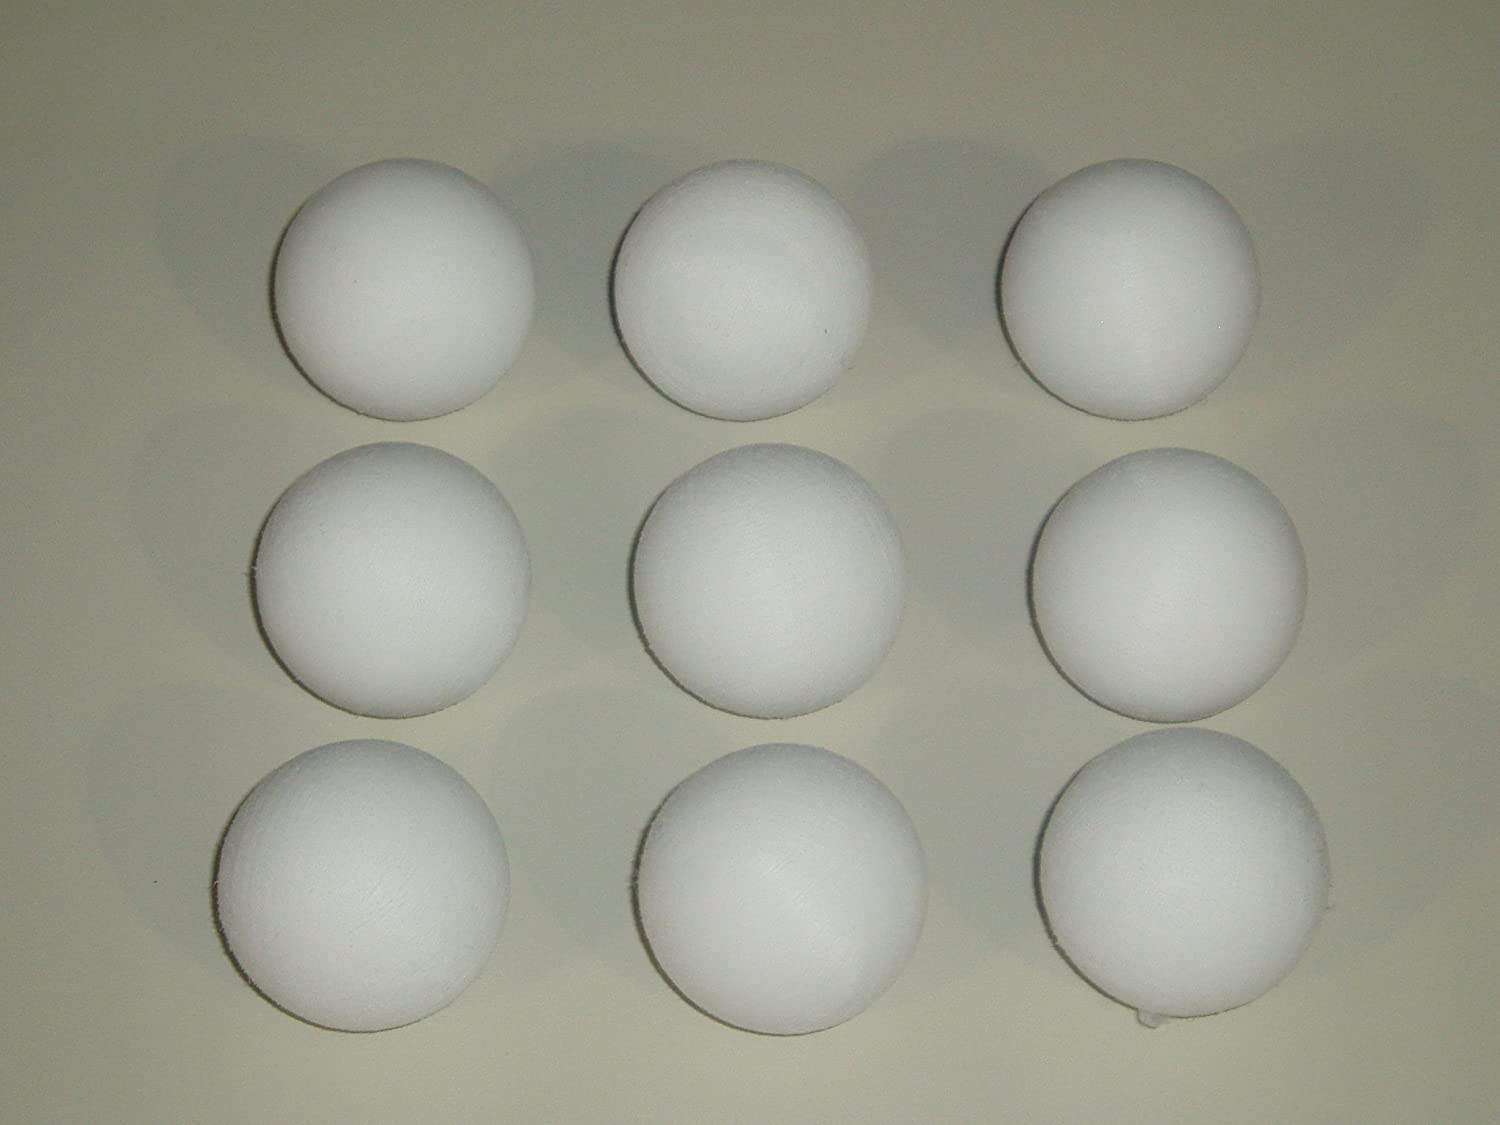 FOOTBALL TABLE BALLS 9 x 36 mm SCUFFED WHITE BALLS ** SGL